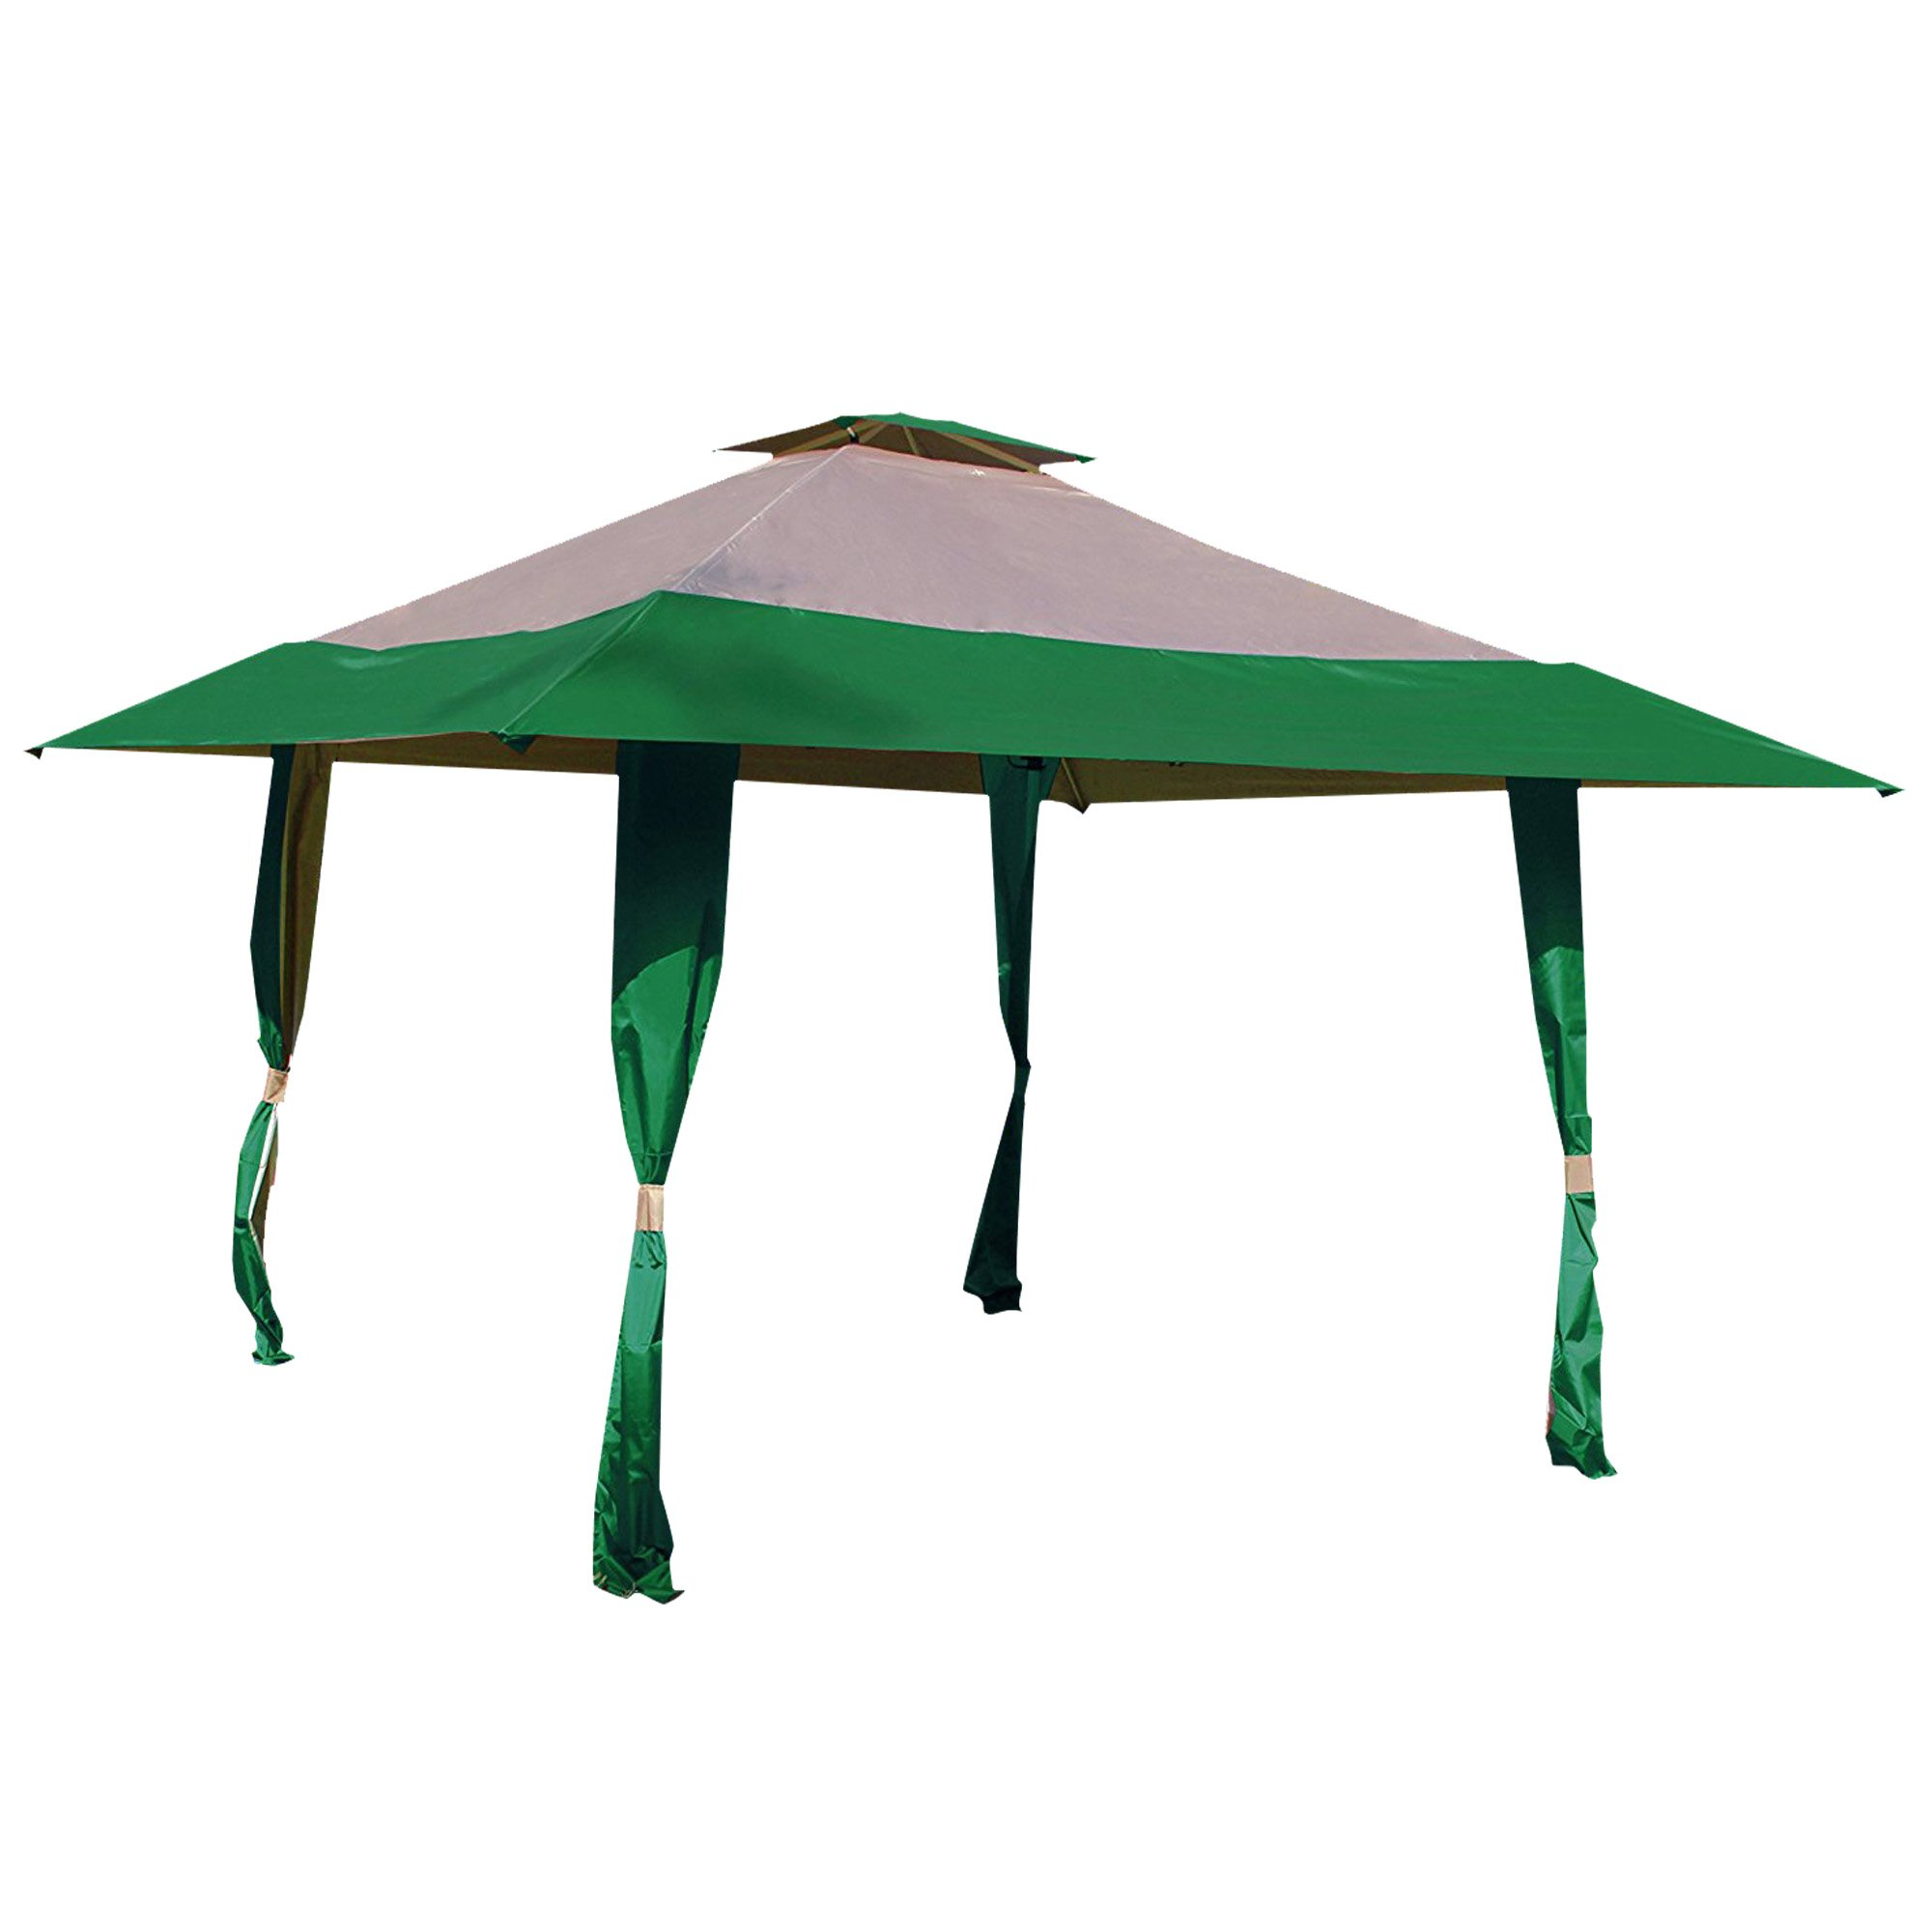 Cloud Mountain 13' x 13' Pop Up Canopy Outdoor Yard Patio Double Roof Easy Set Up Canopy Tent for Party Event, Hunter Green Tan by Cloud Mountain